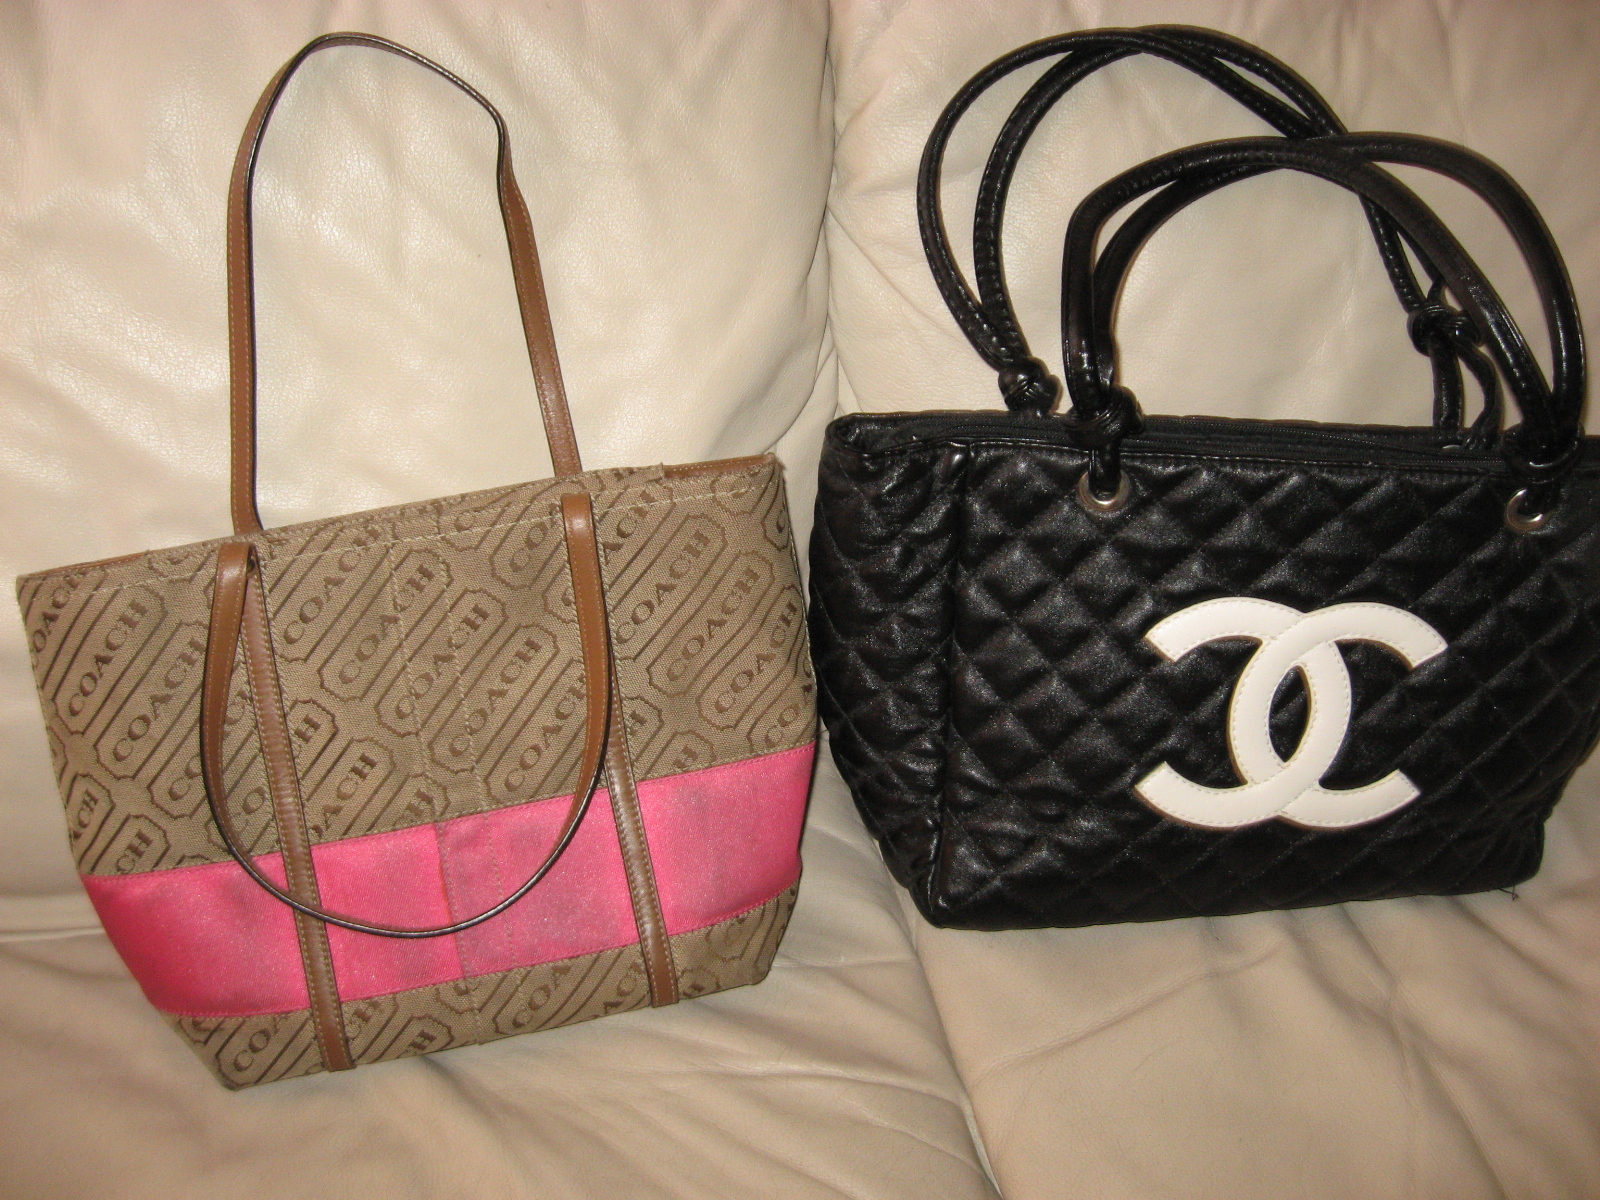 Coach Chanel Aldo Purses Fake